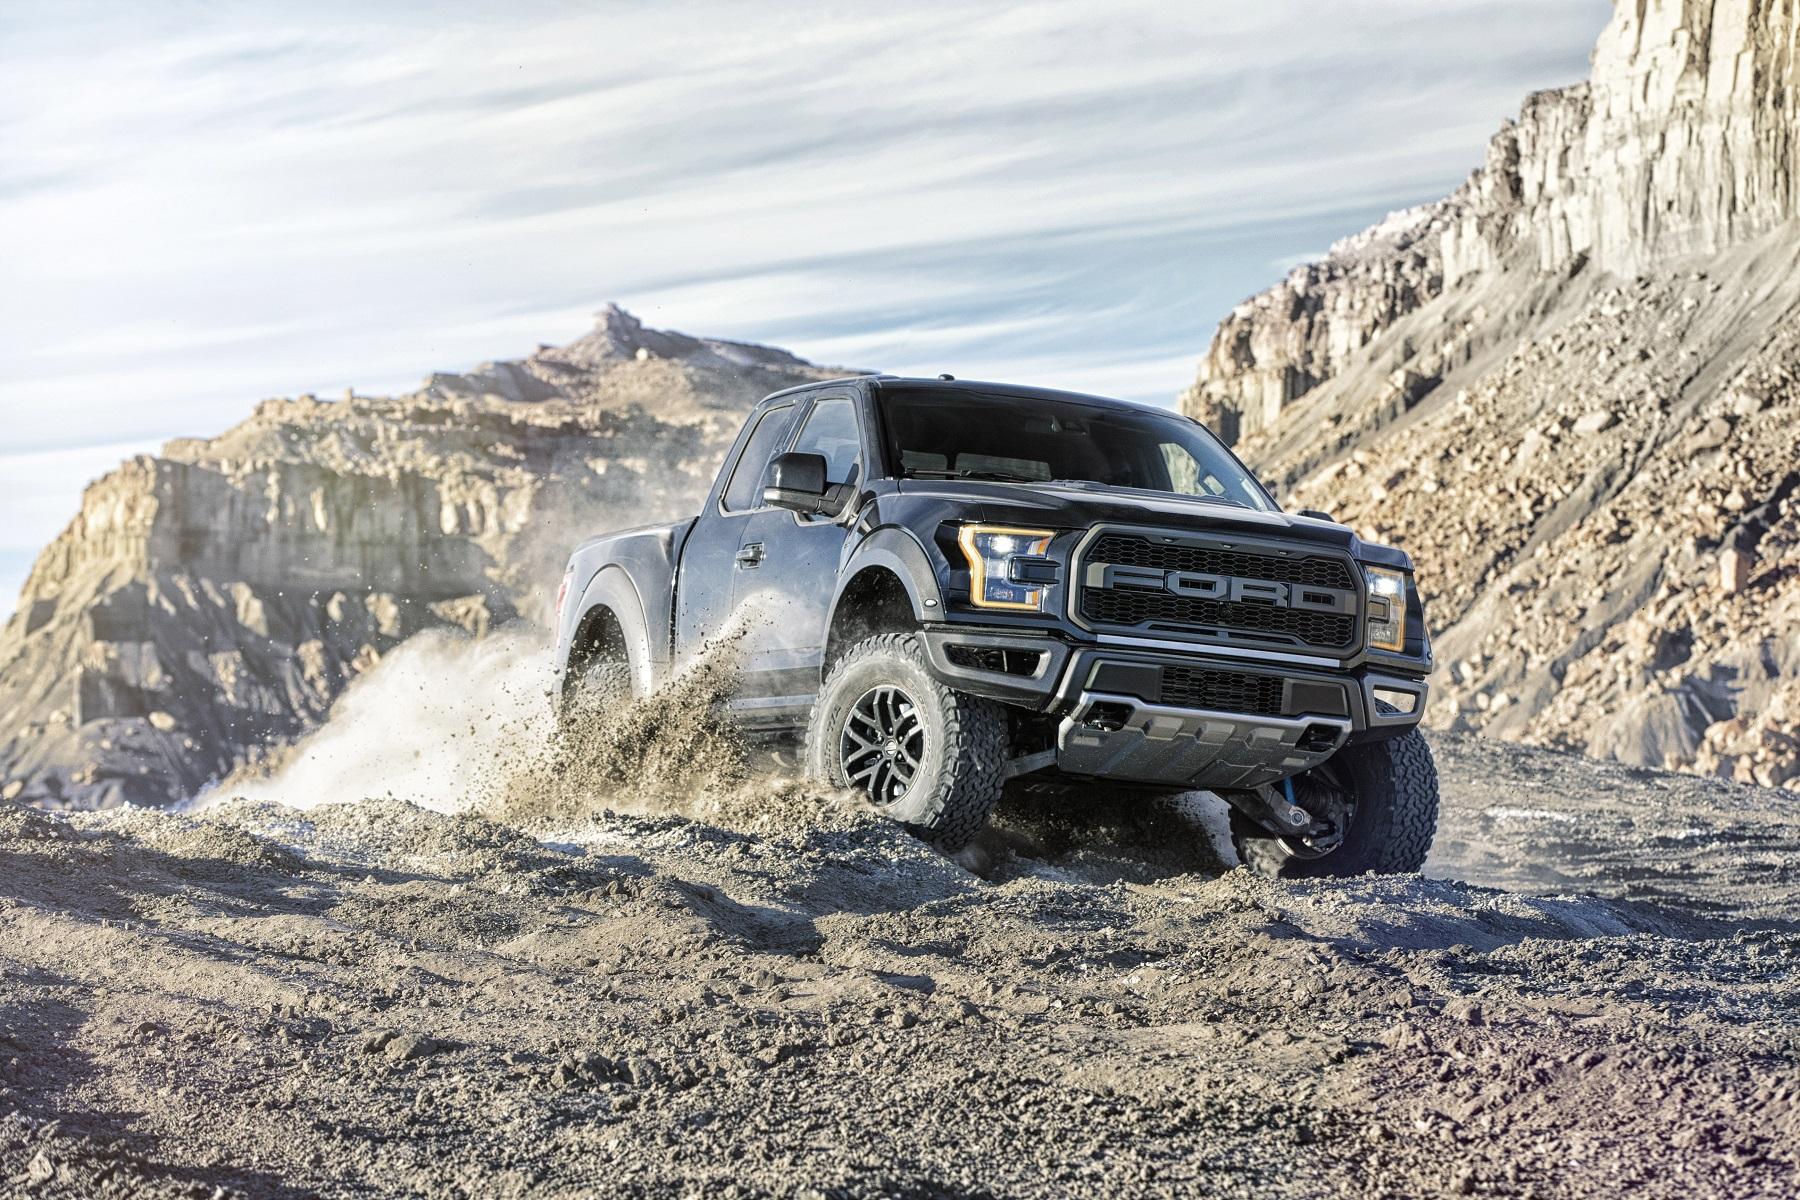 Manufacturer photo: The 2017 F-150 Raptor's chiseled looks are reminiscent of Trophy Trucks -- the fastest and most powerful class of off-road pickups